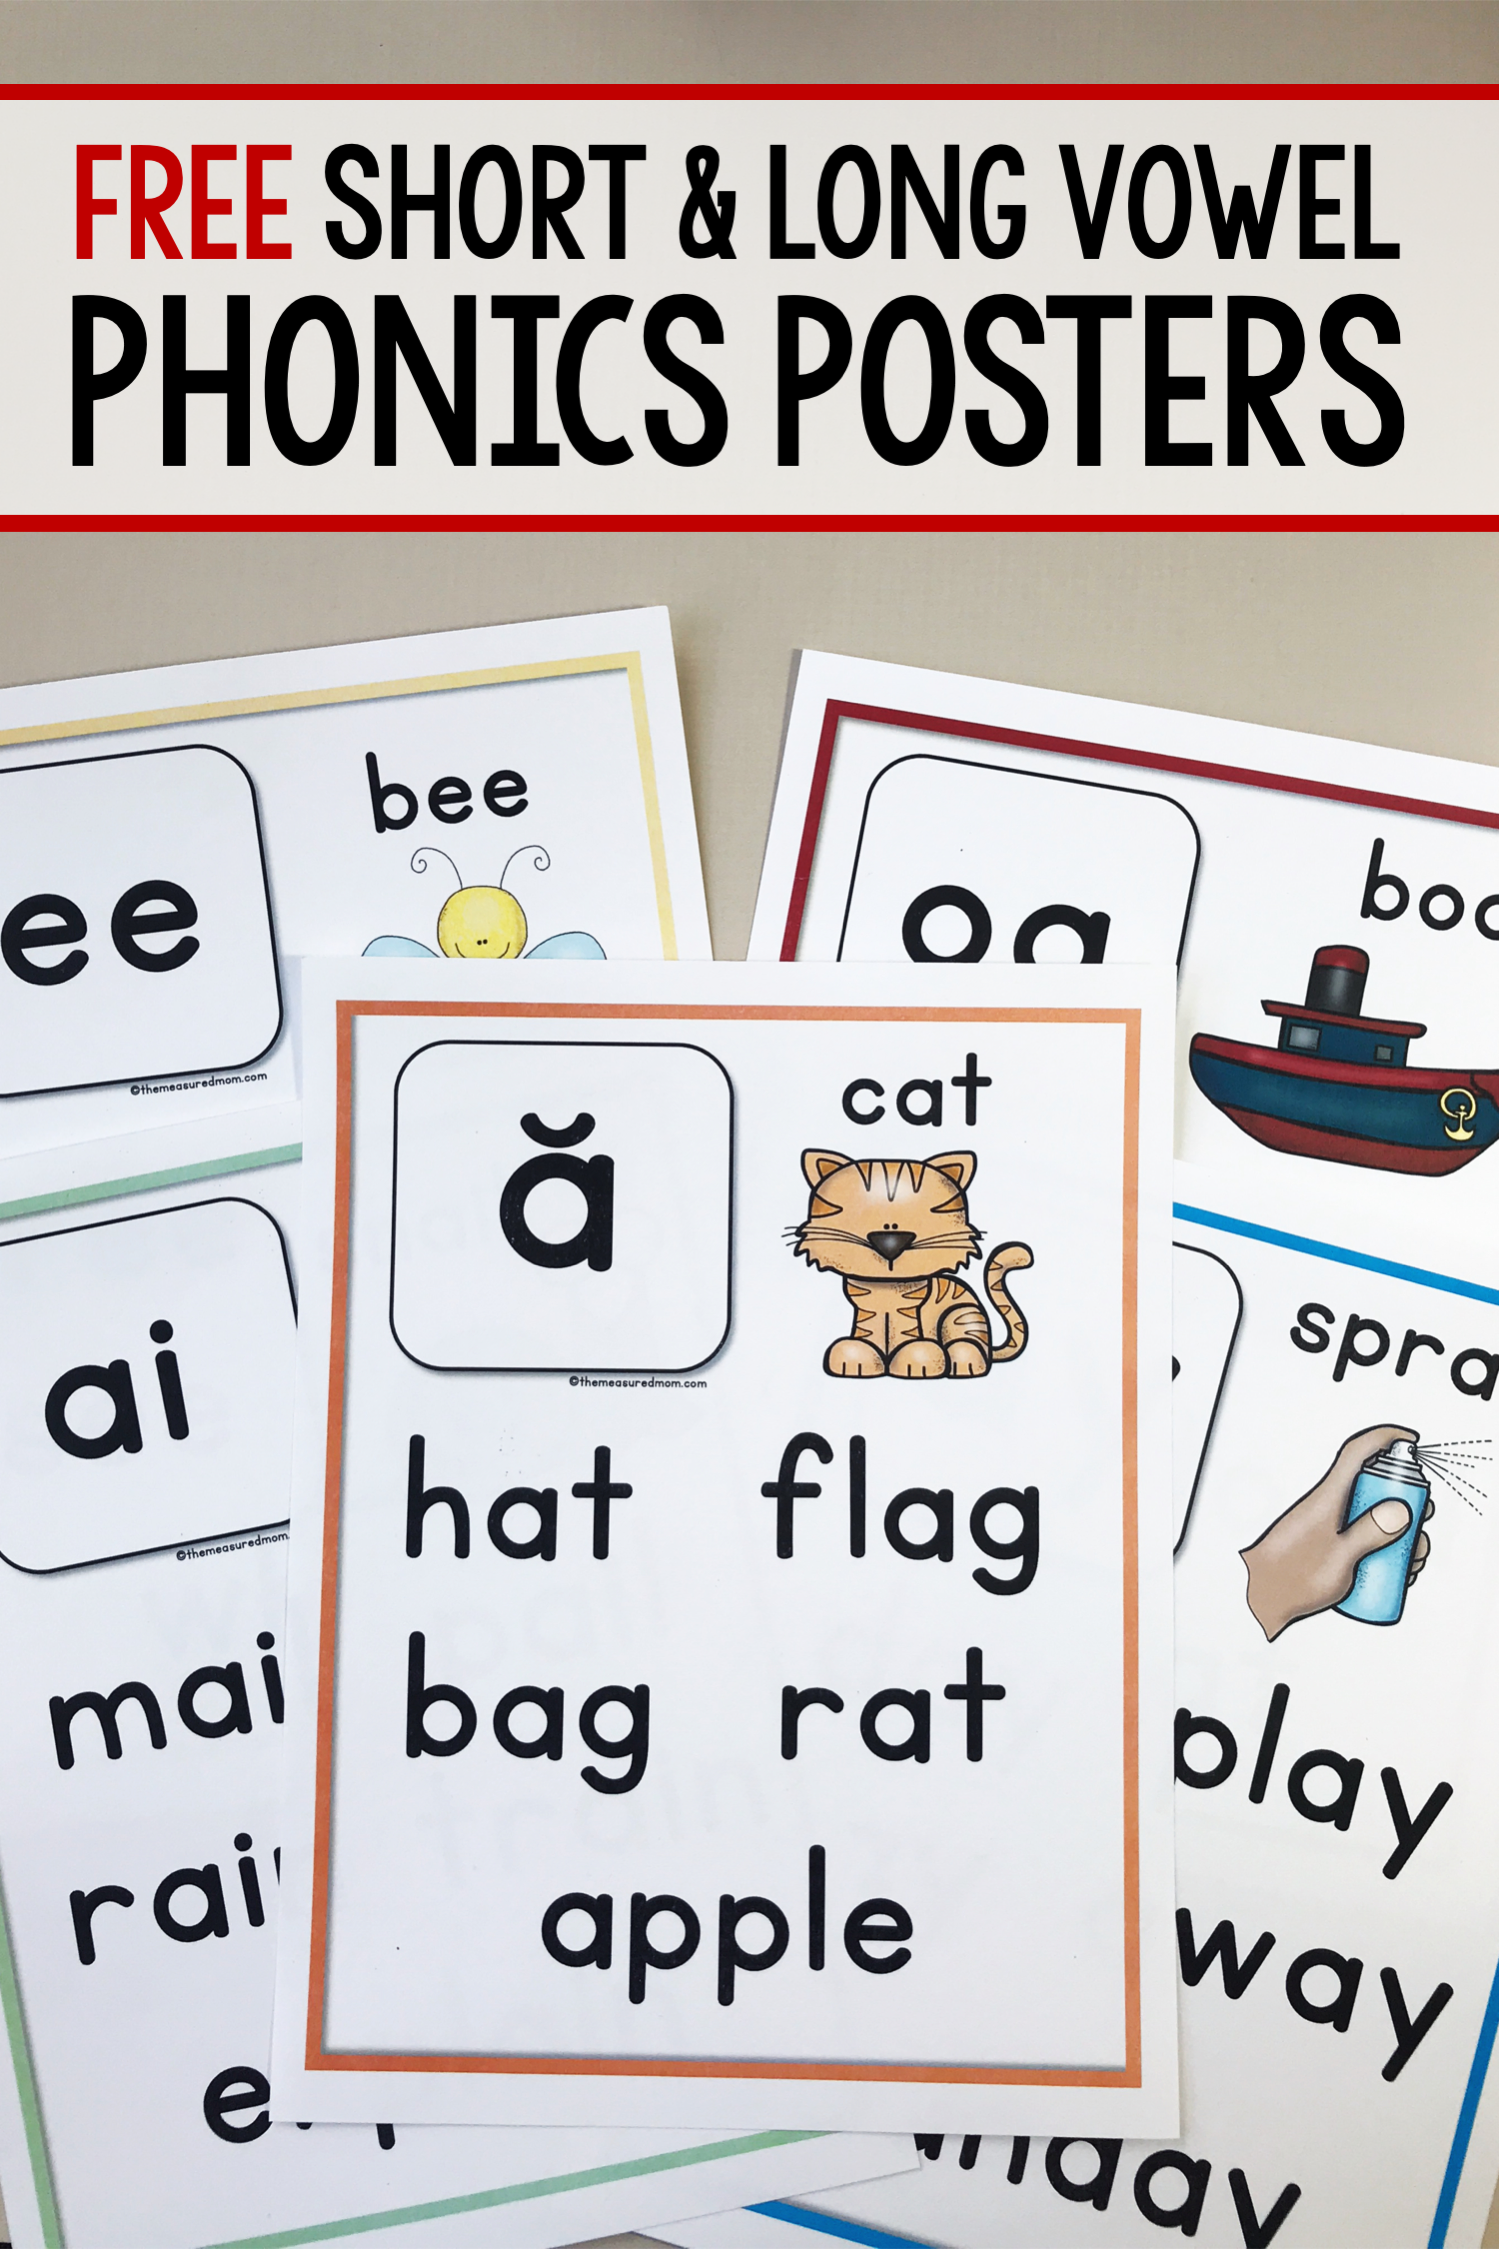 Print These Free Phonics Posters To Use As Mini Anchor